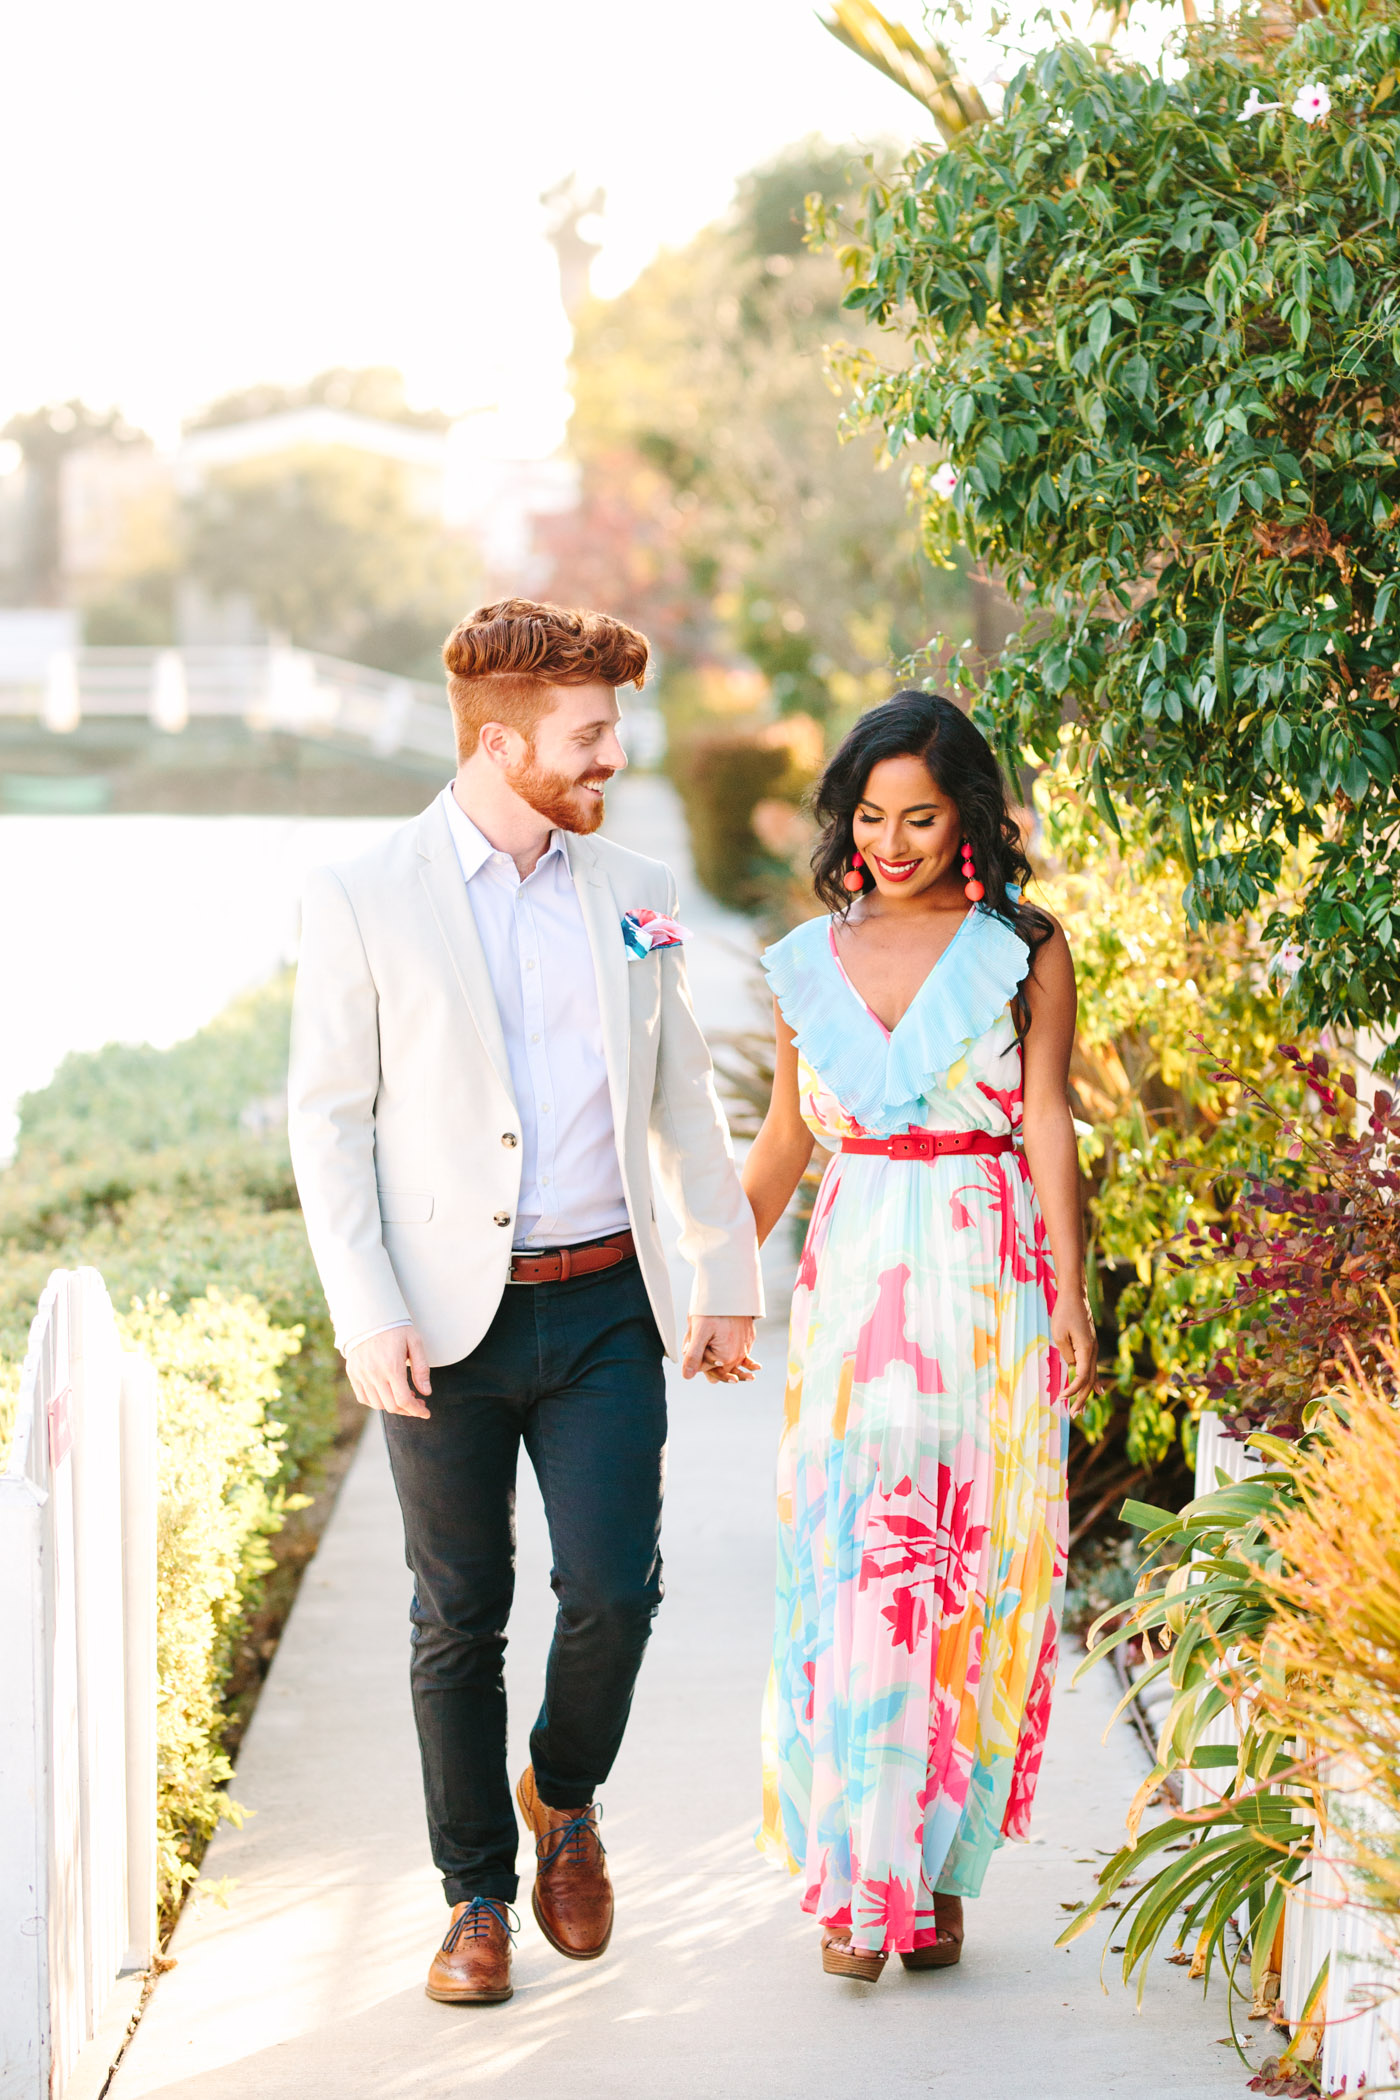 Venice California Canals Engagement